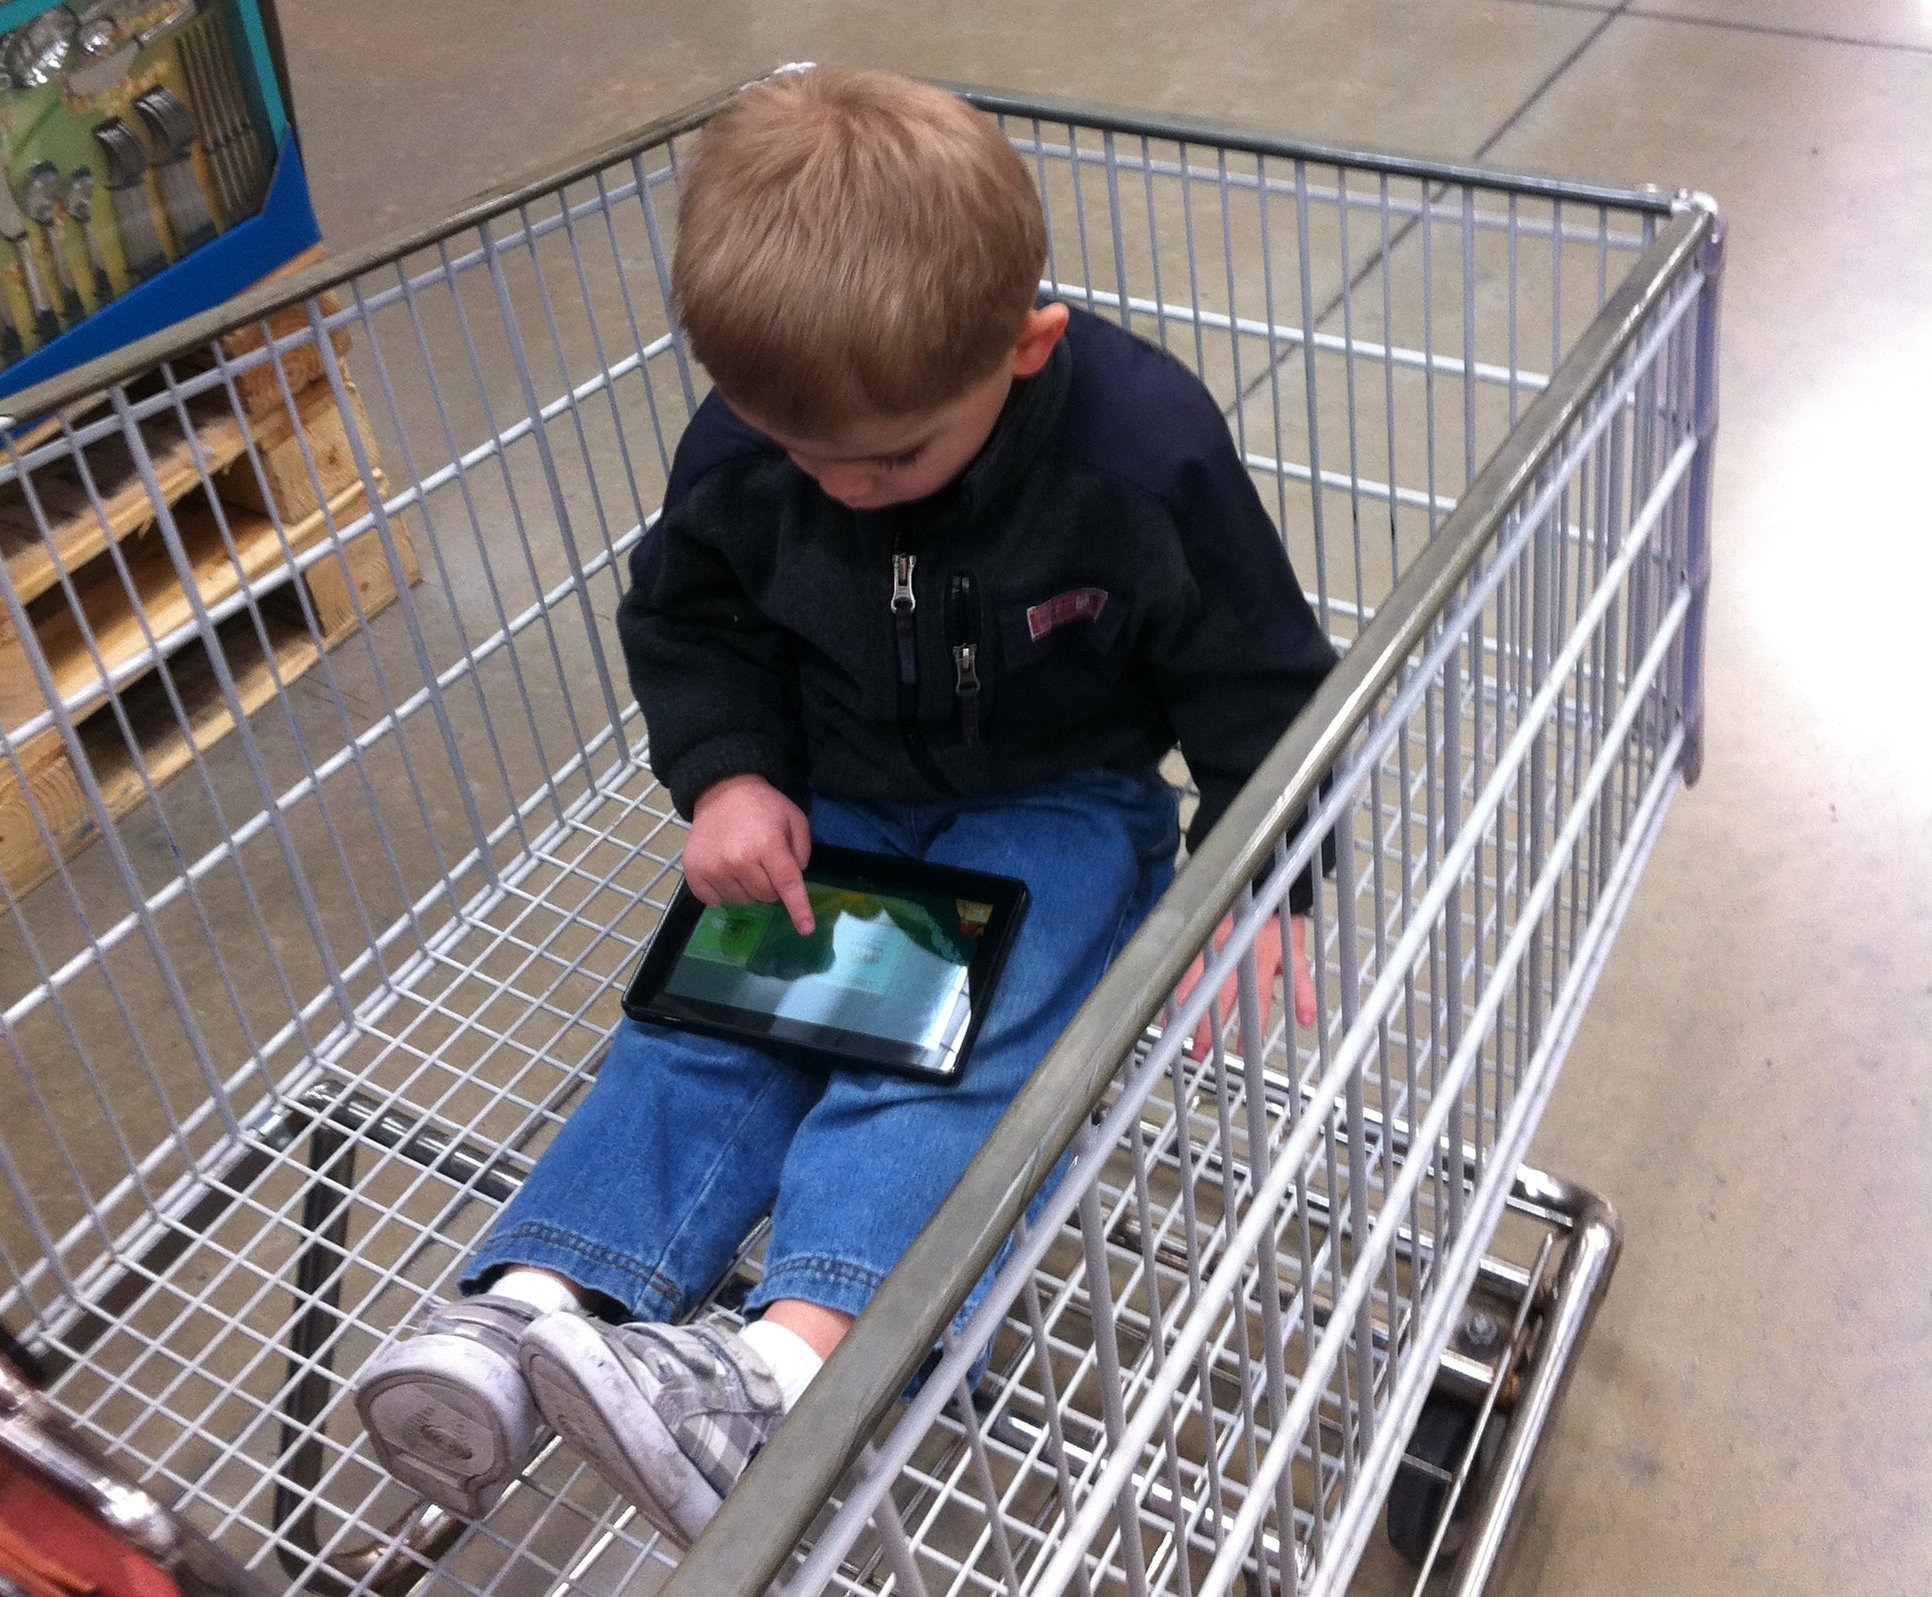 Bryson Playing Angry Birds on a Kindle Fire